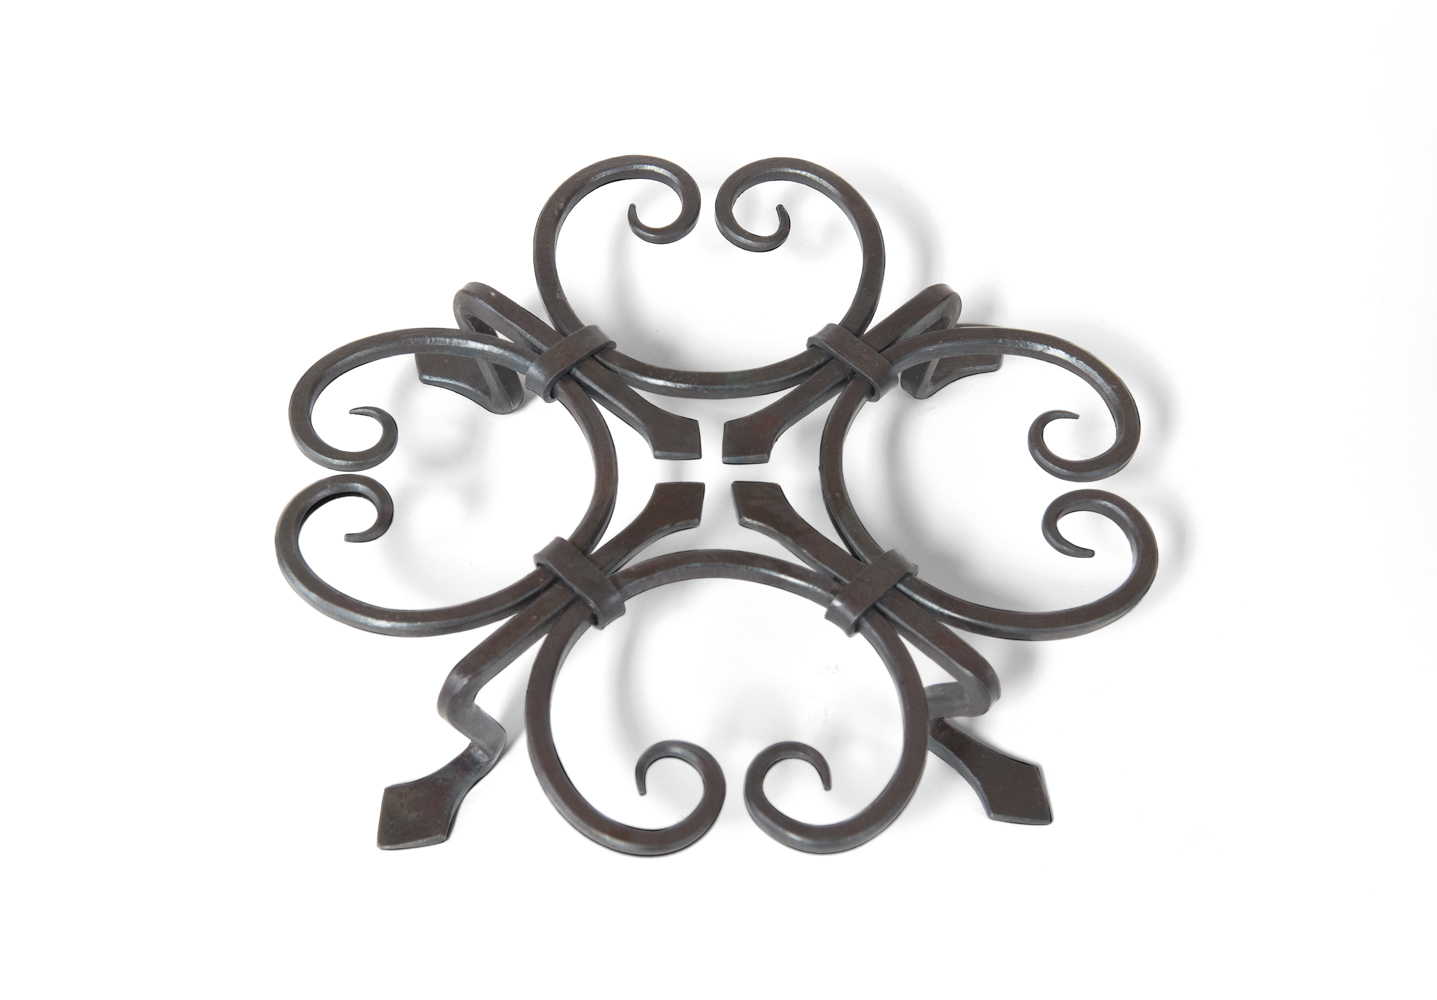 trivet2-Edit_website.jpg